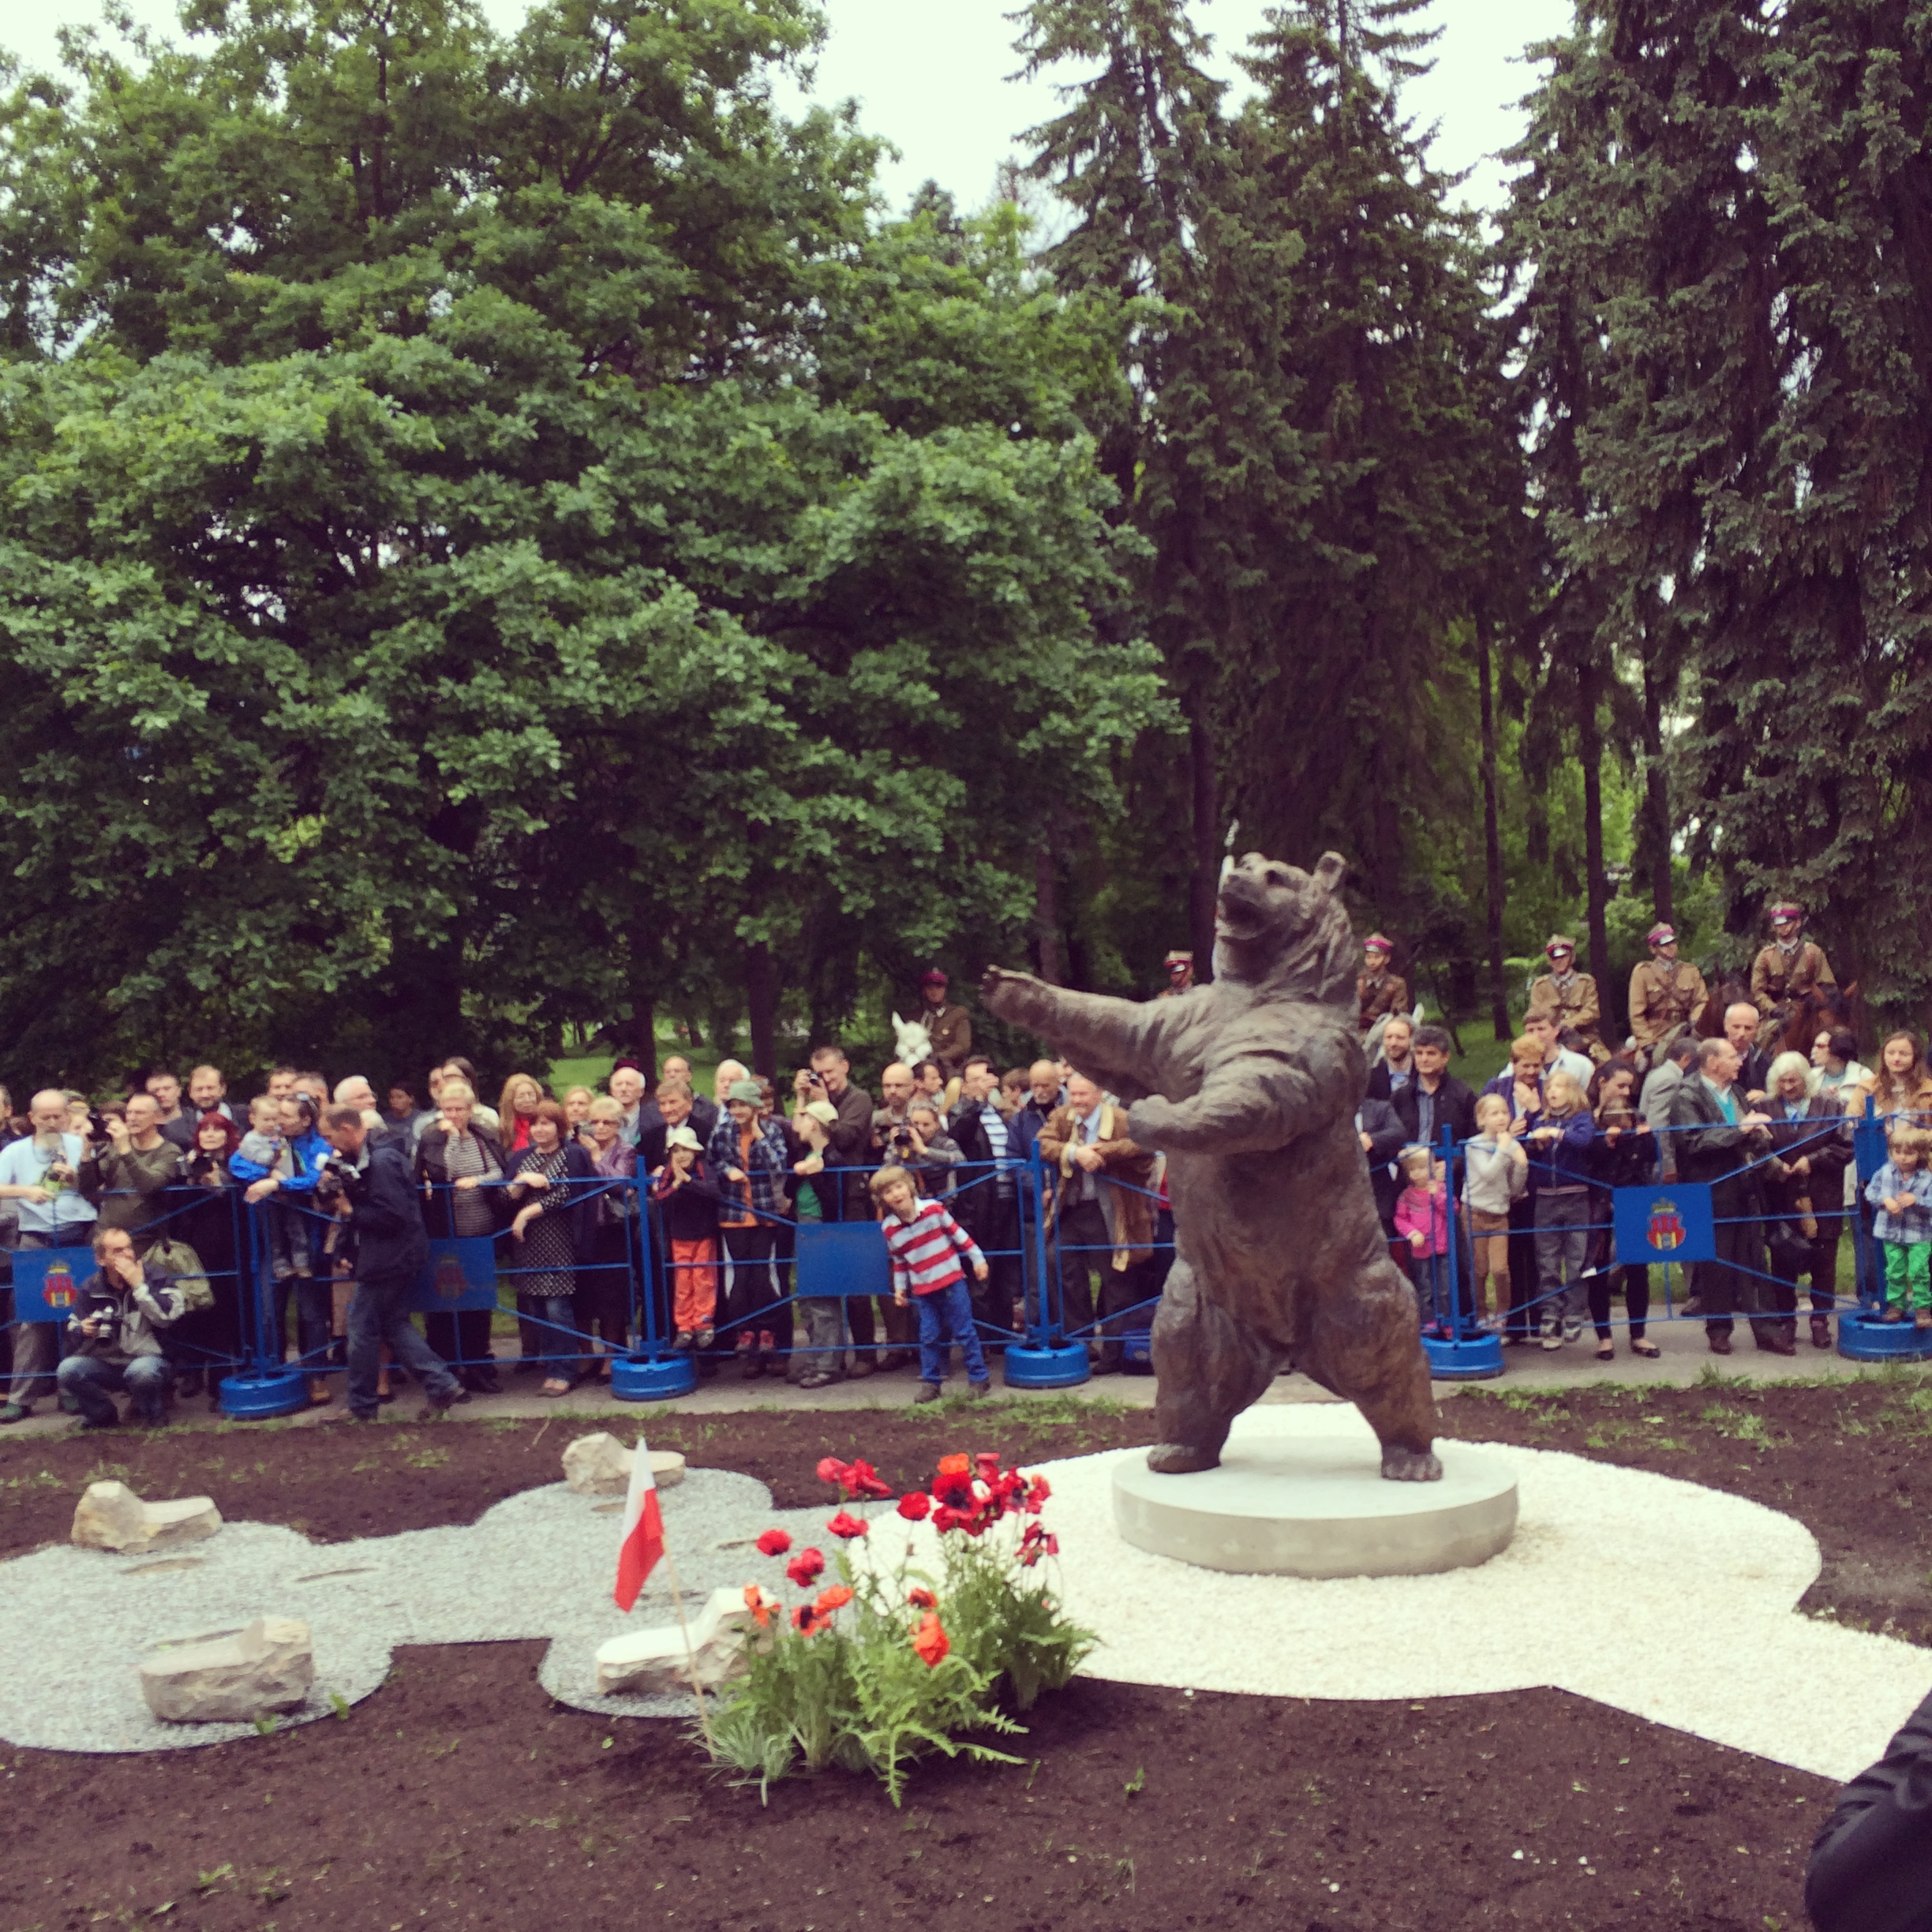 Crowds admiring Wojtek for the first time 18th May 2014